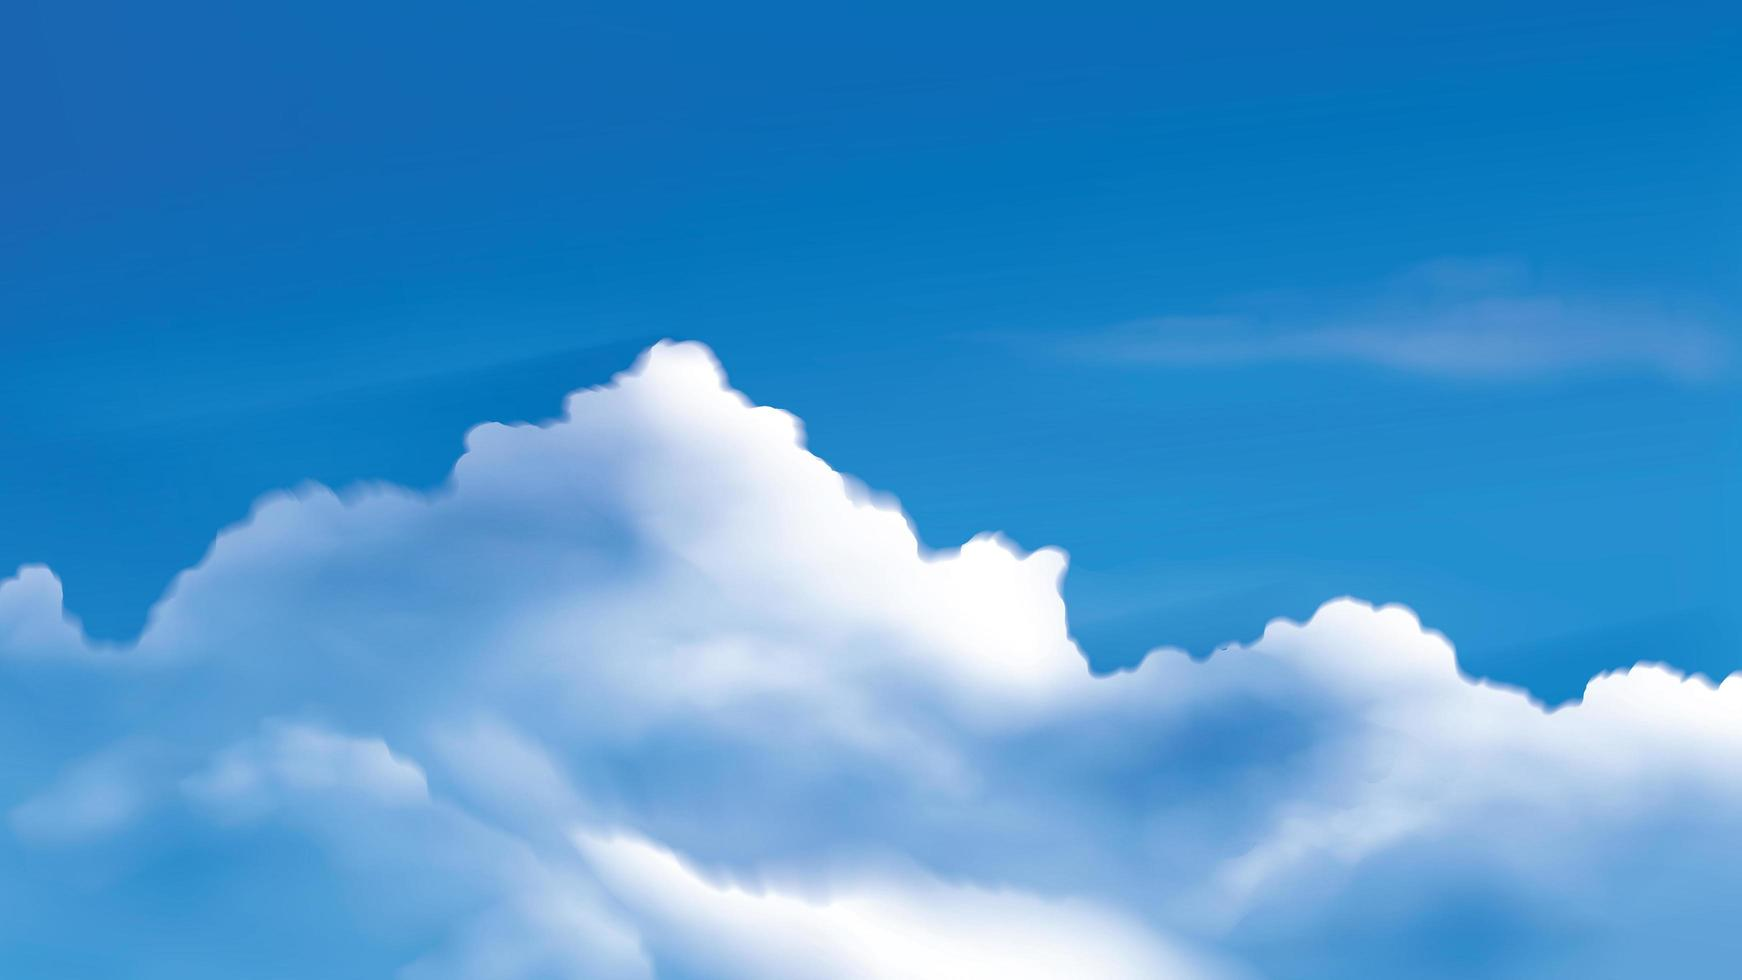 Cumulus clouds on the bright blue sky vector